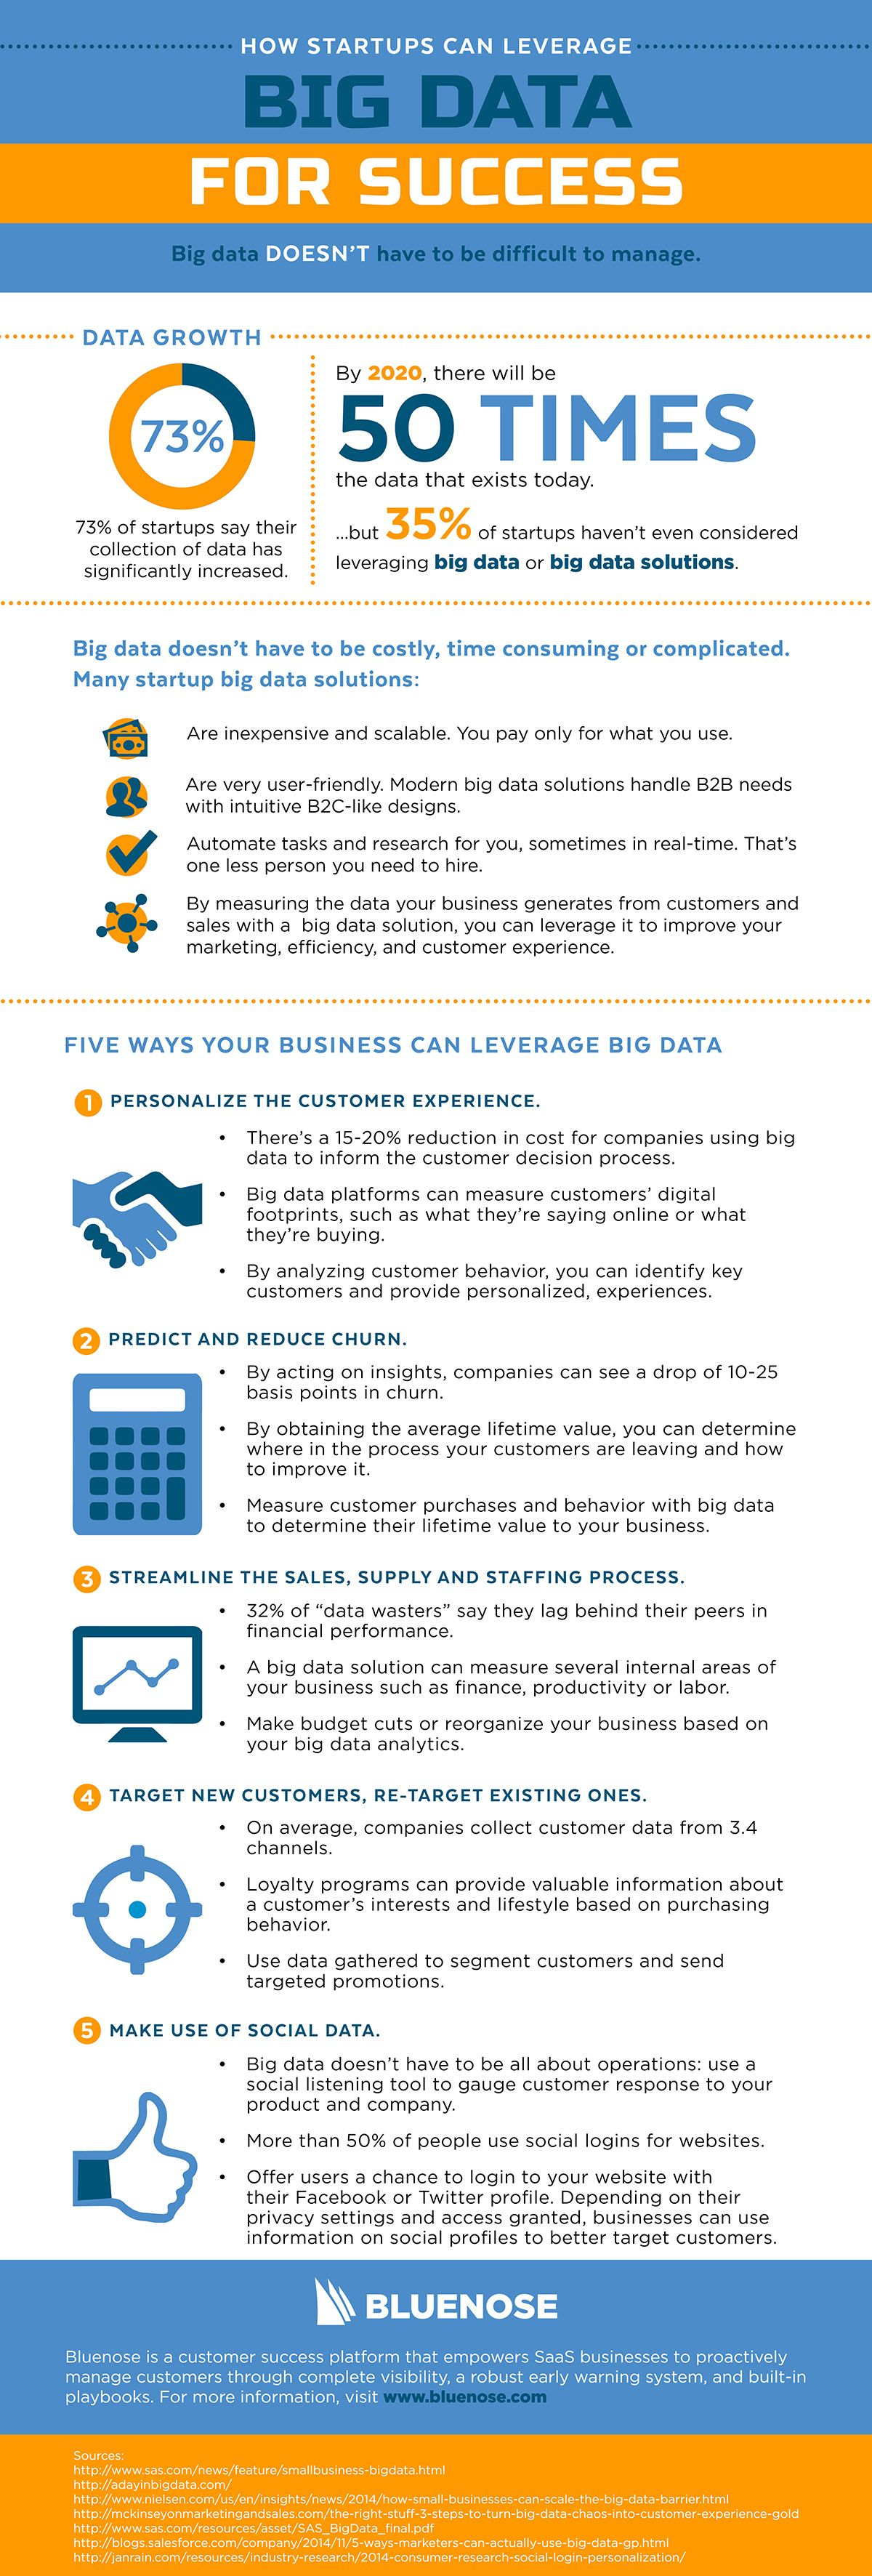 How Startups Can Leverage Big Data For Success #infographic #Business #Startup